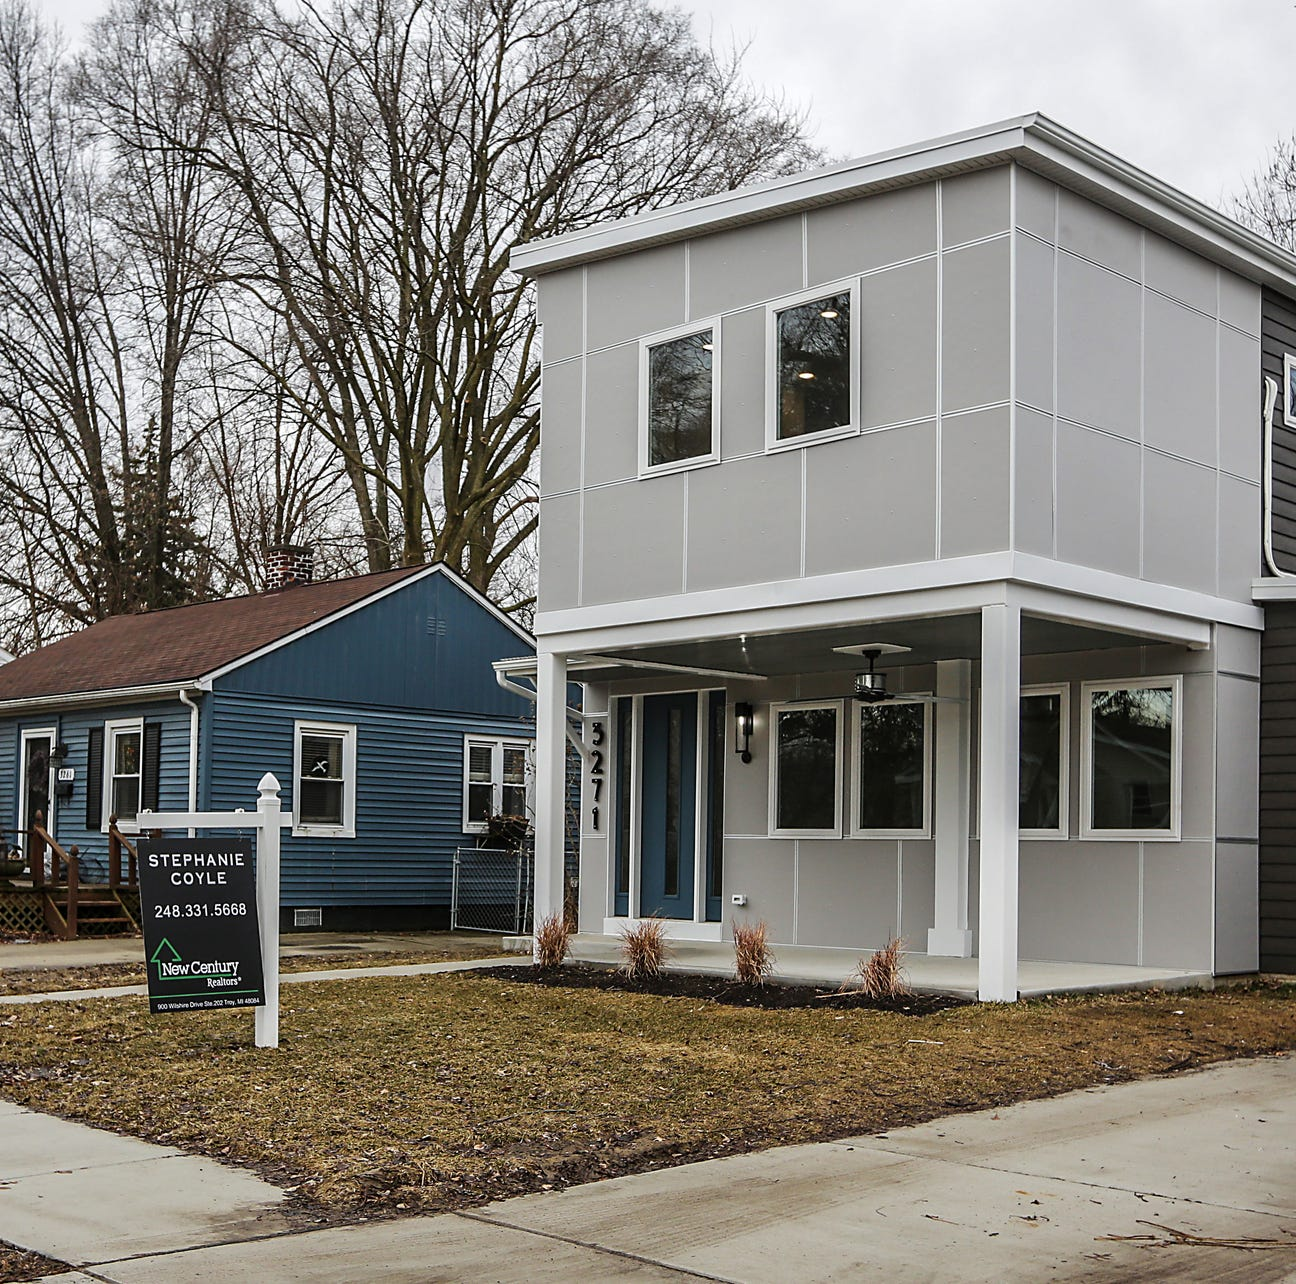 Upscale shipping container house in Ferndale is off the market